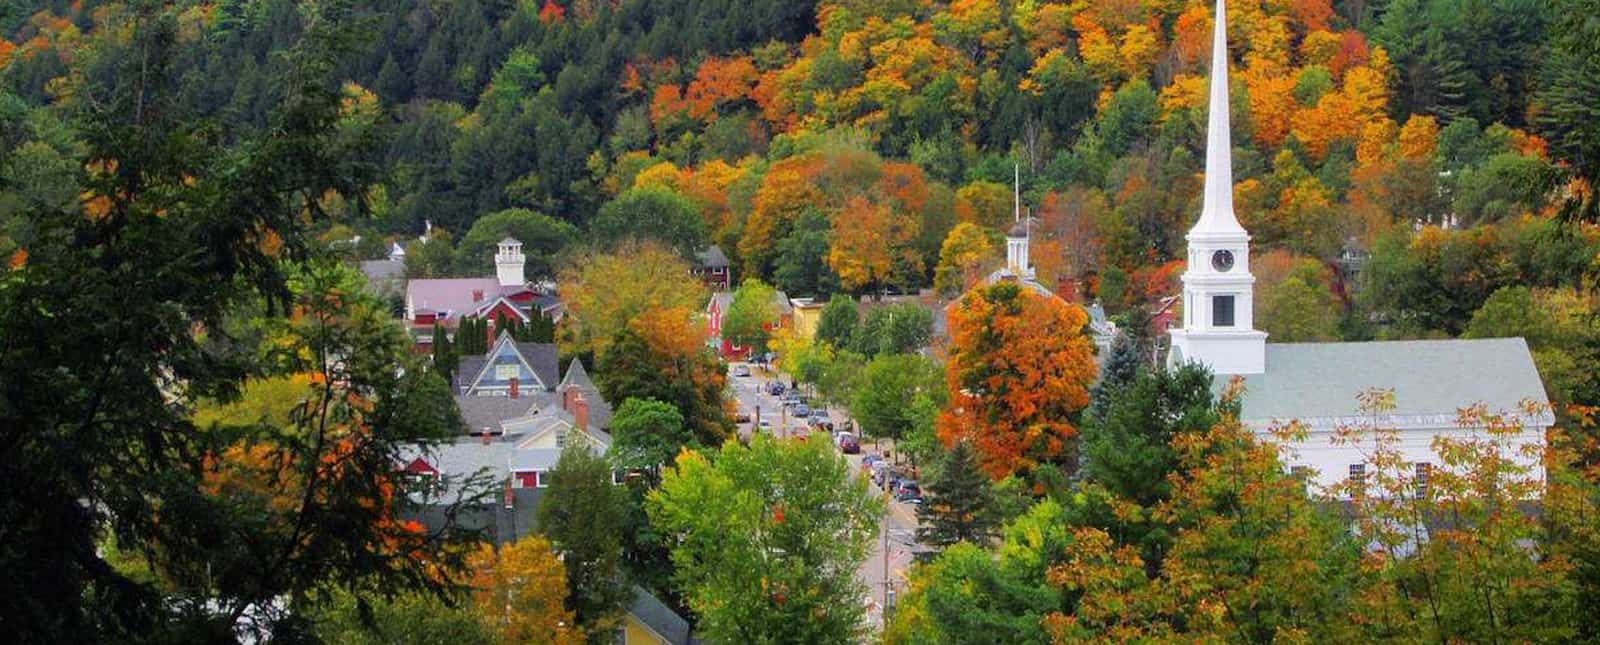 Stowe, Vermont in Autumn